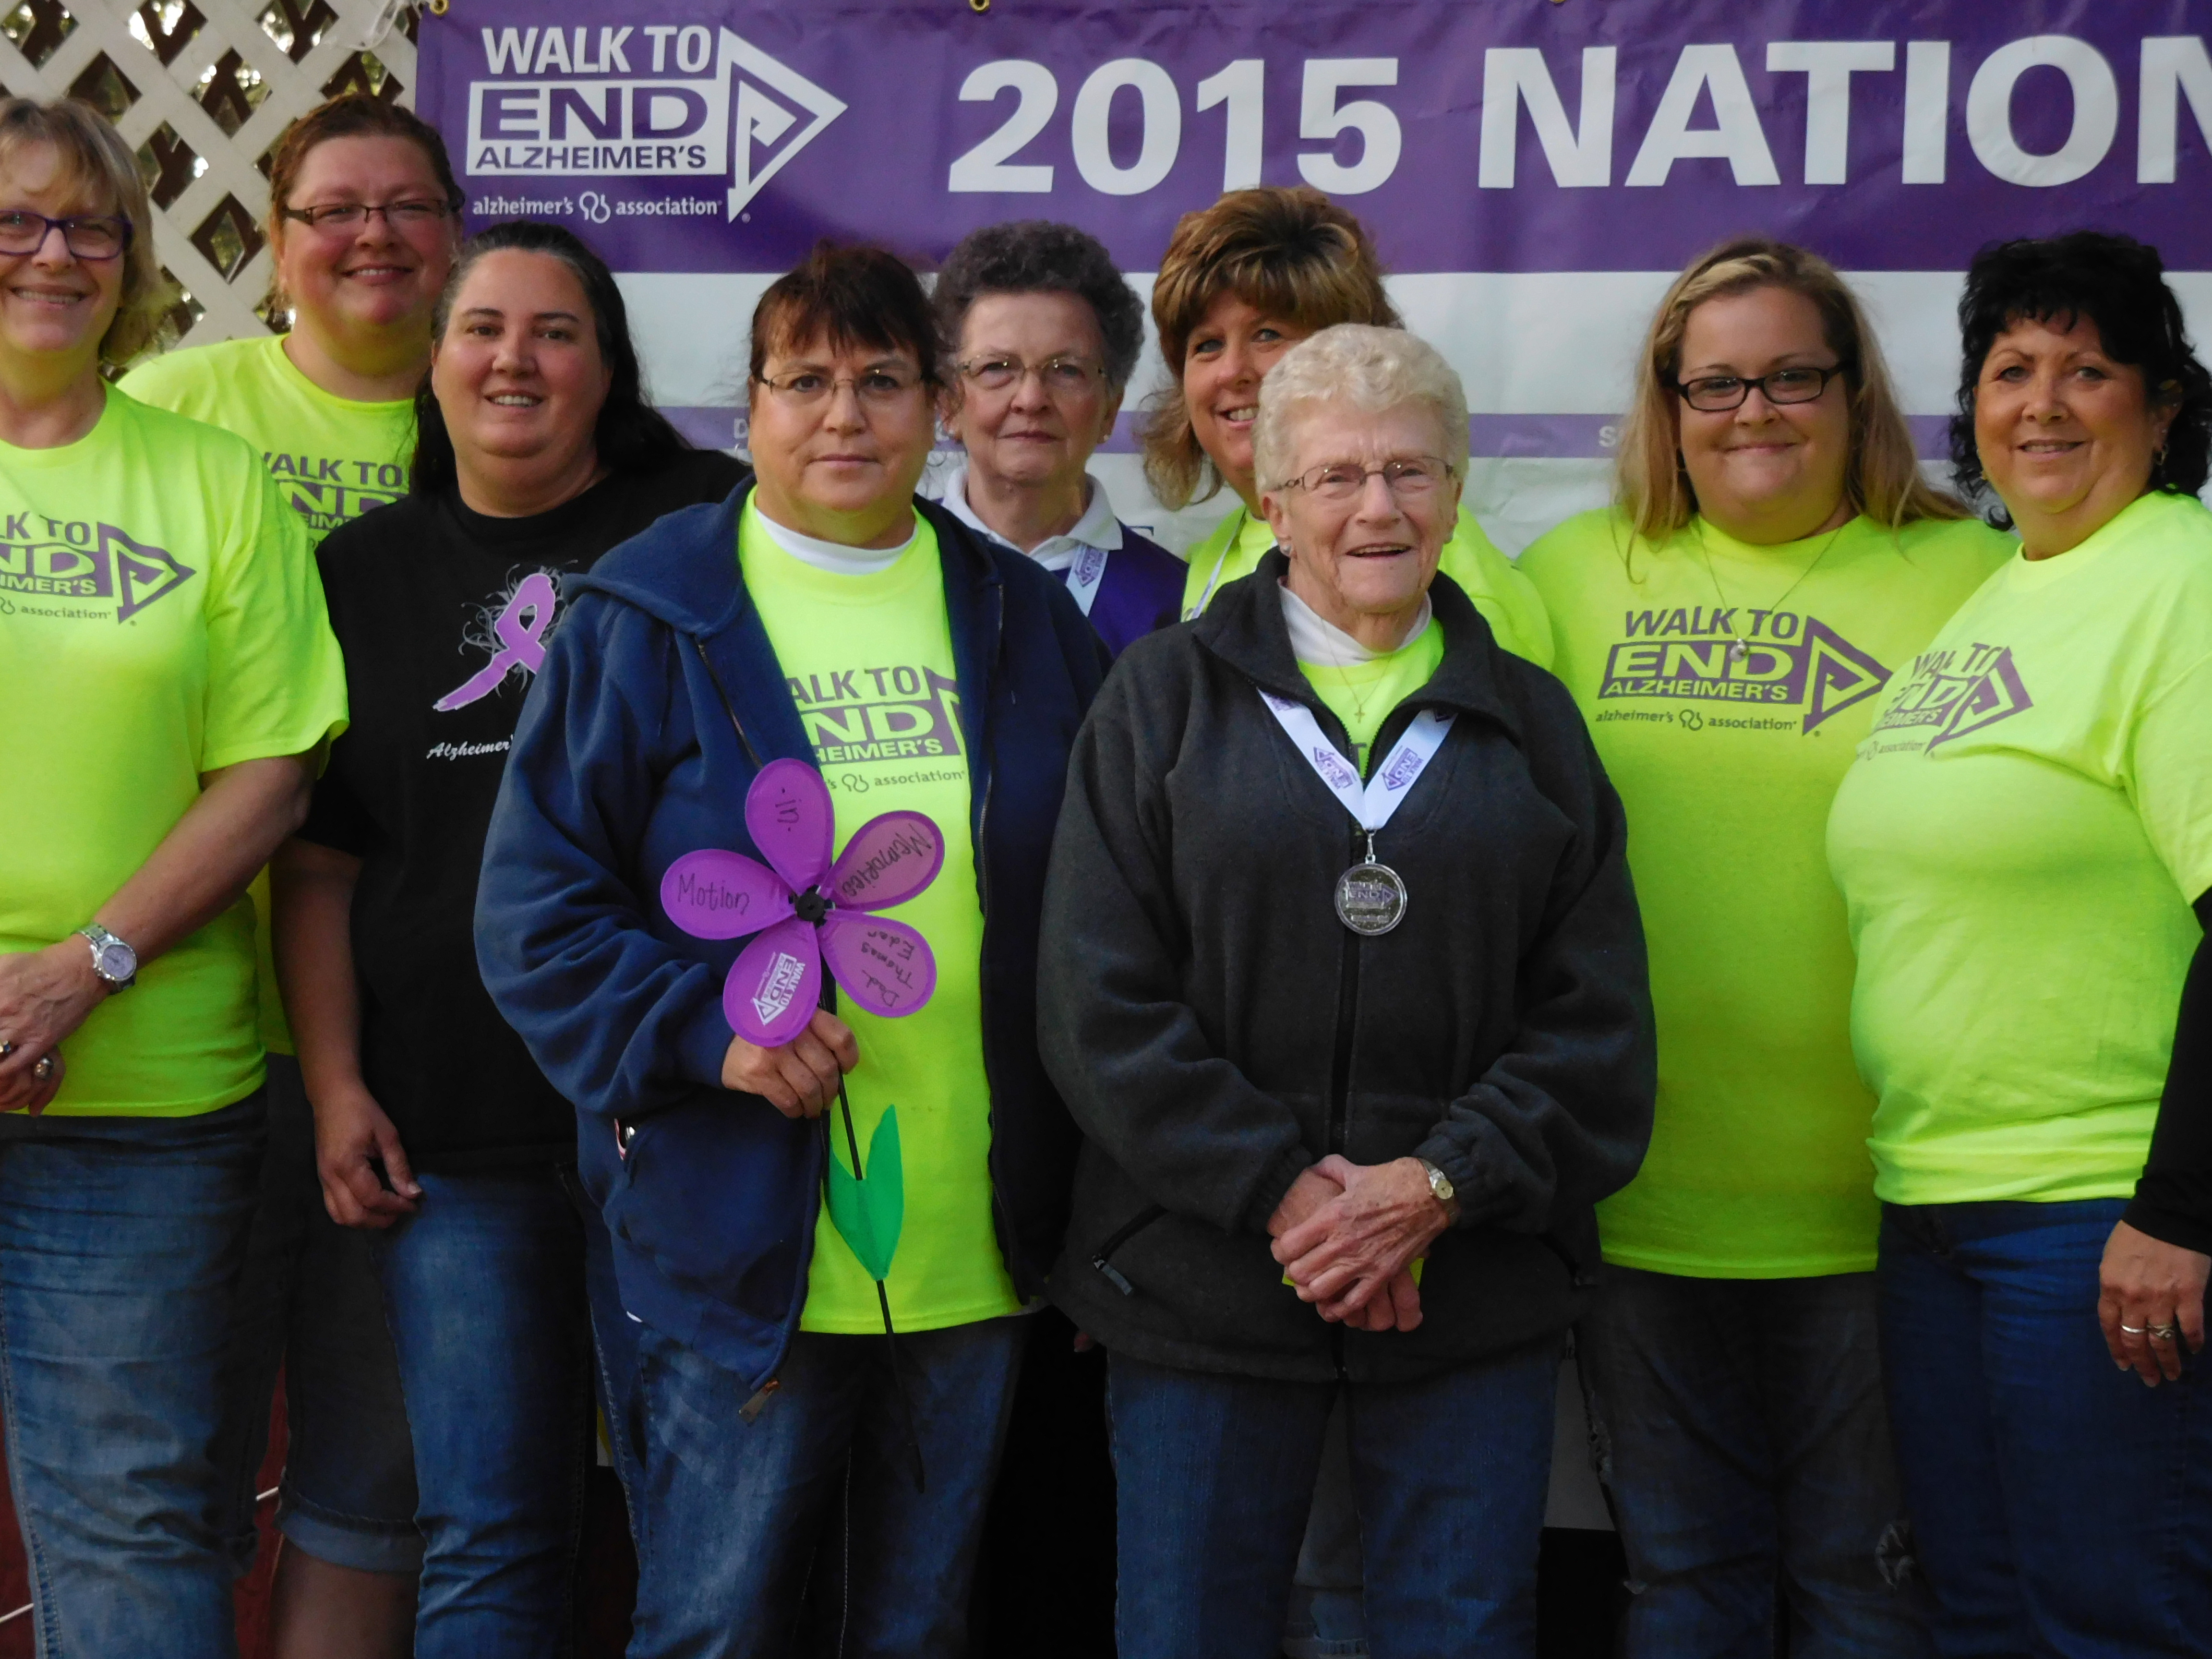 american lutheran homes menomonie walk to end alzheimer's